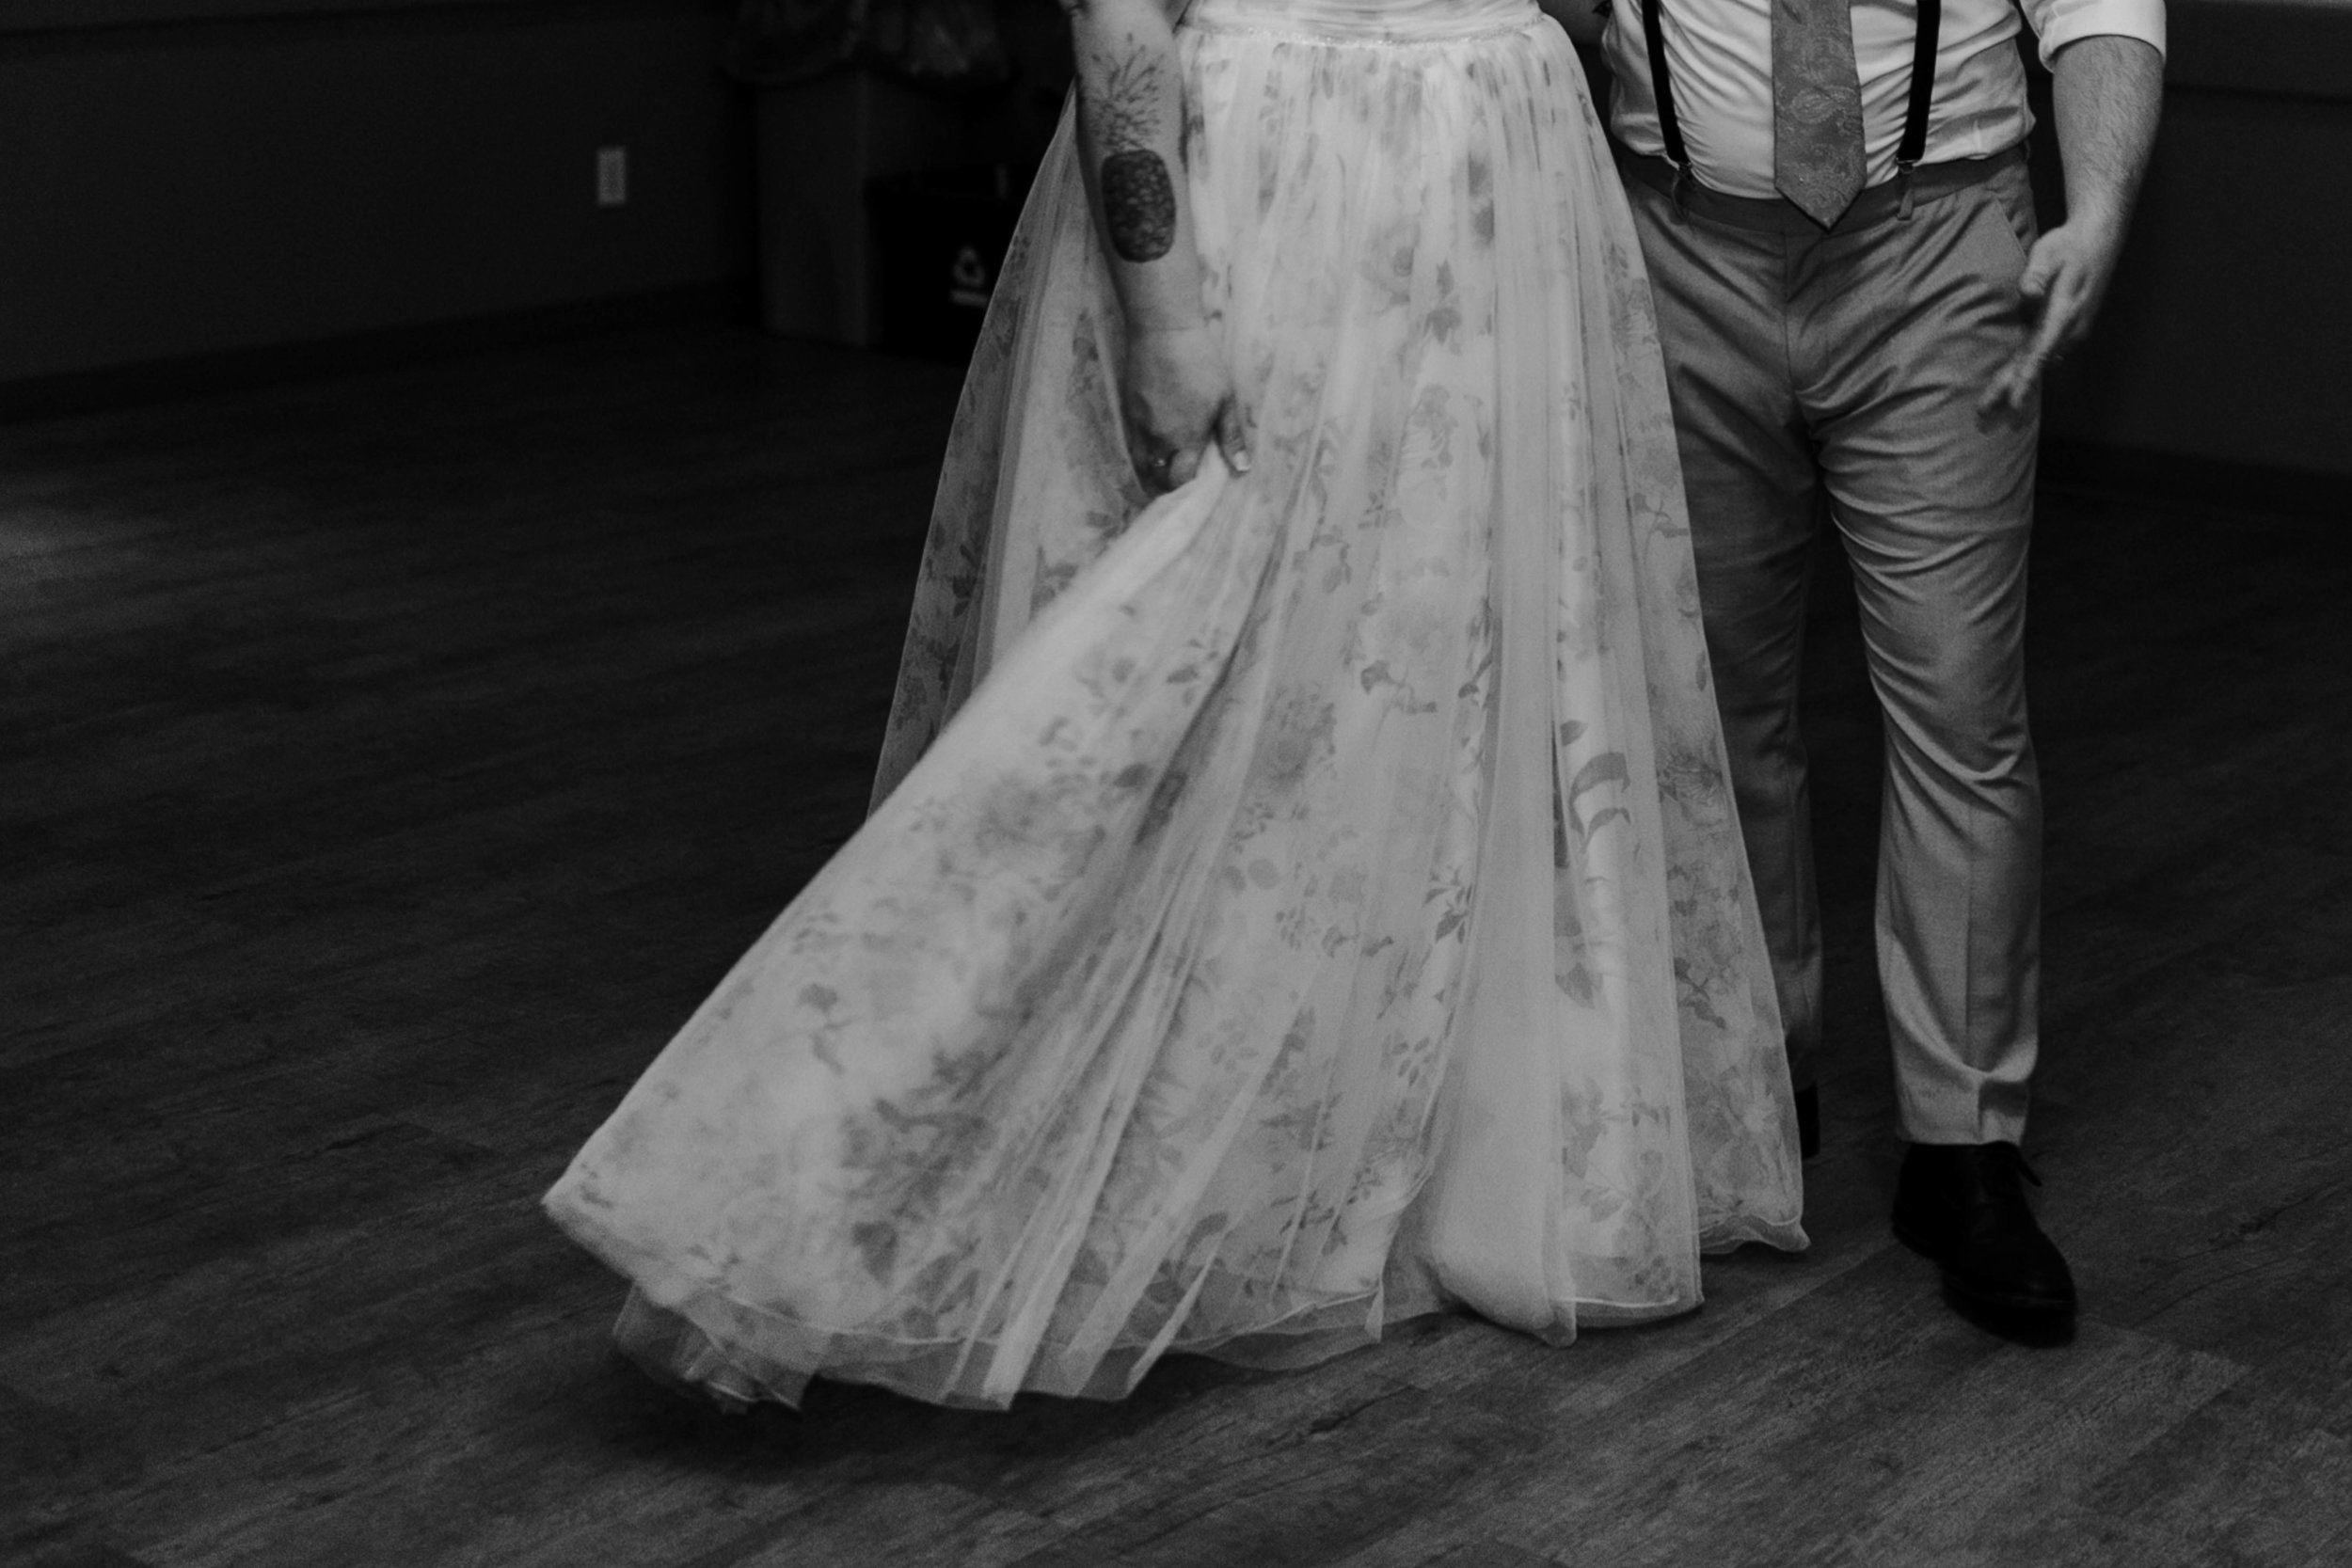 CrystalJessuppeterboroughwedding (64 of 79).jpg